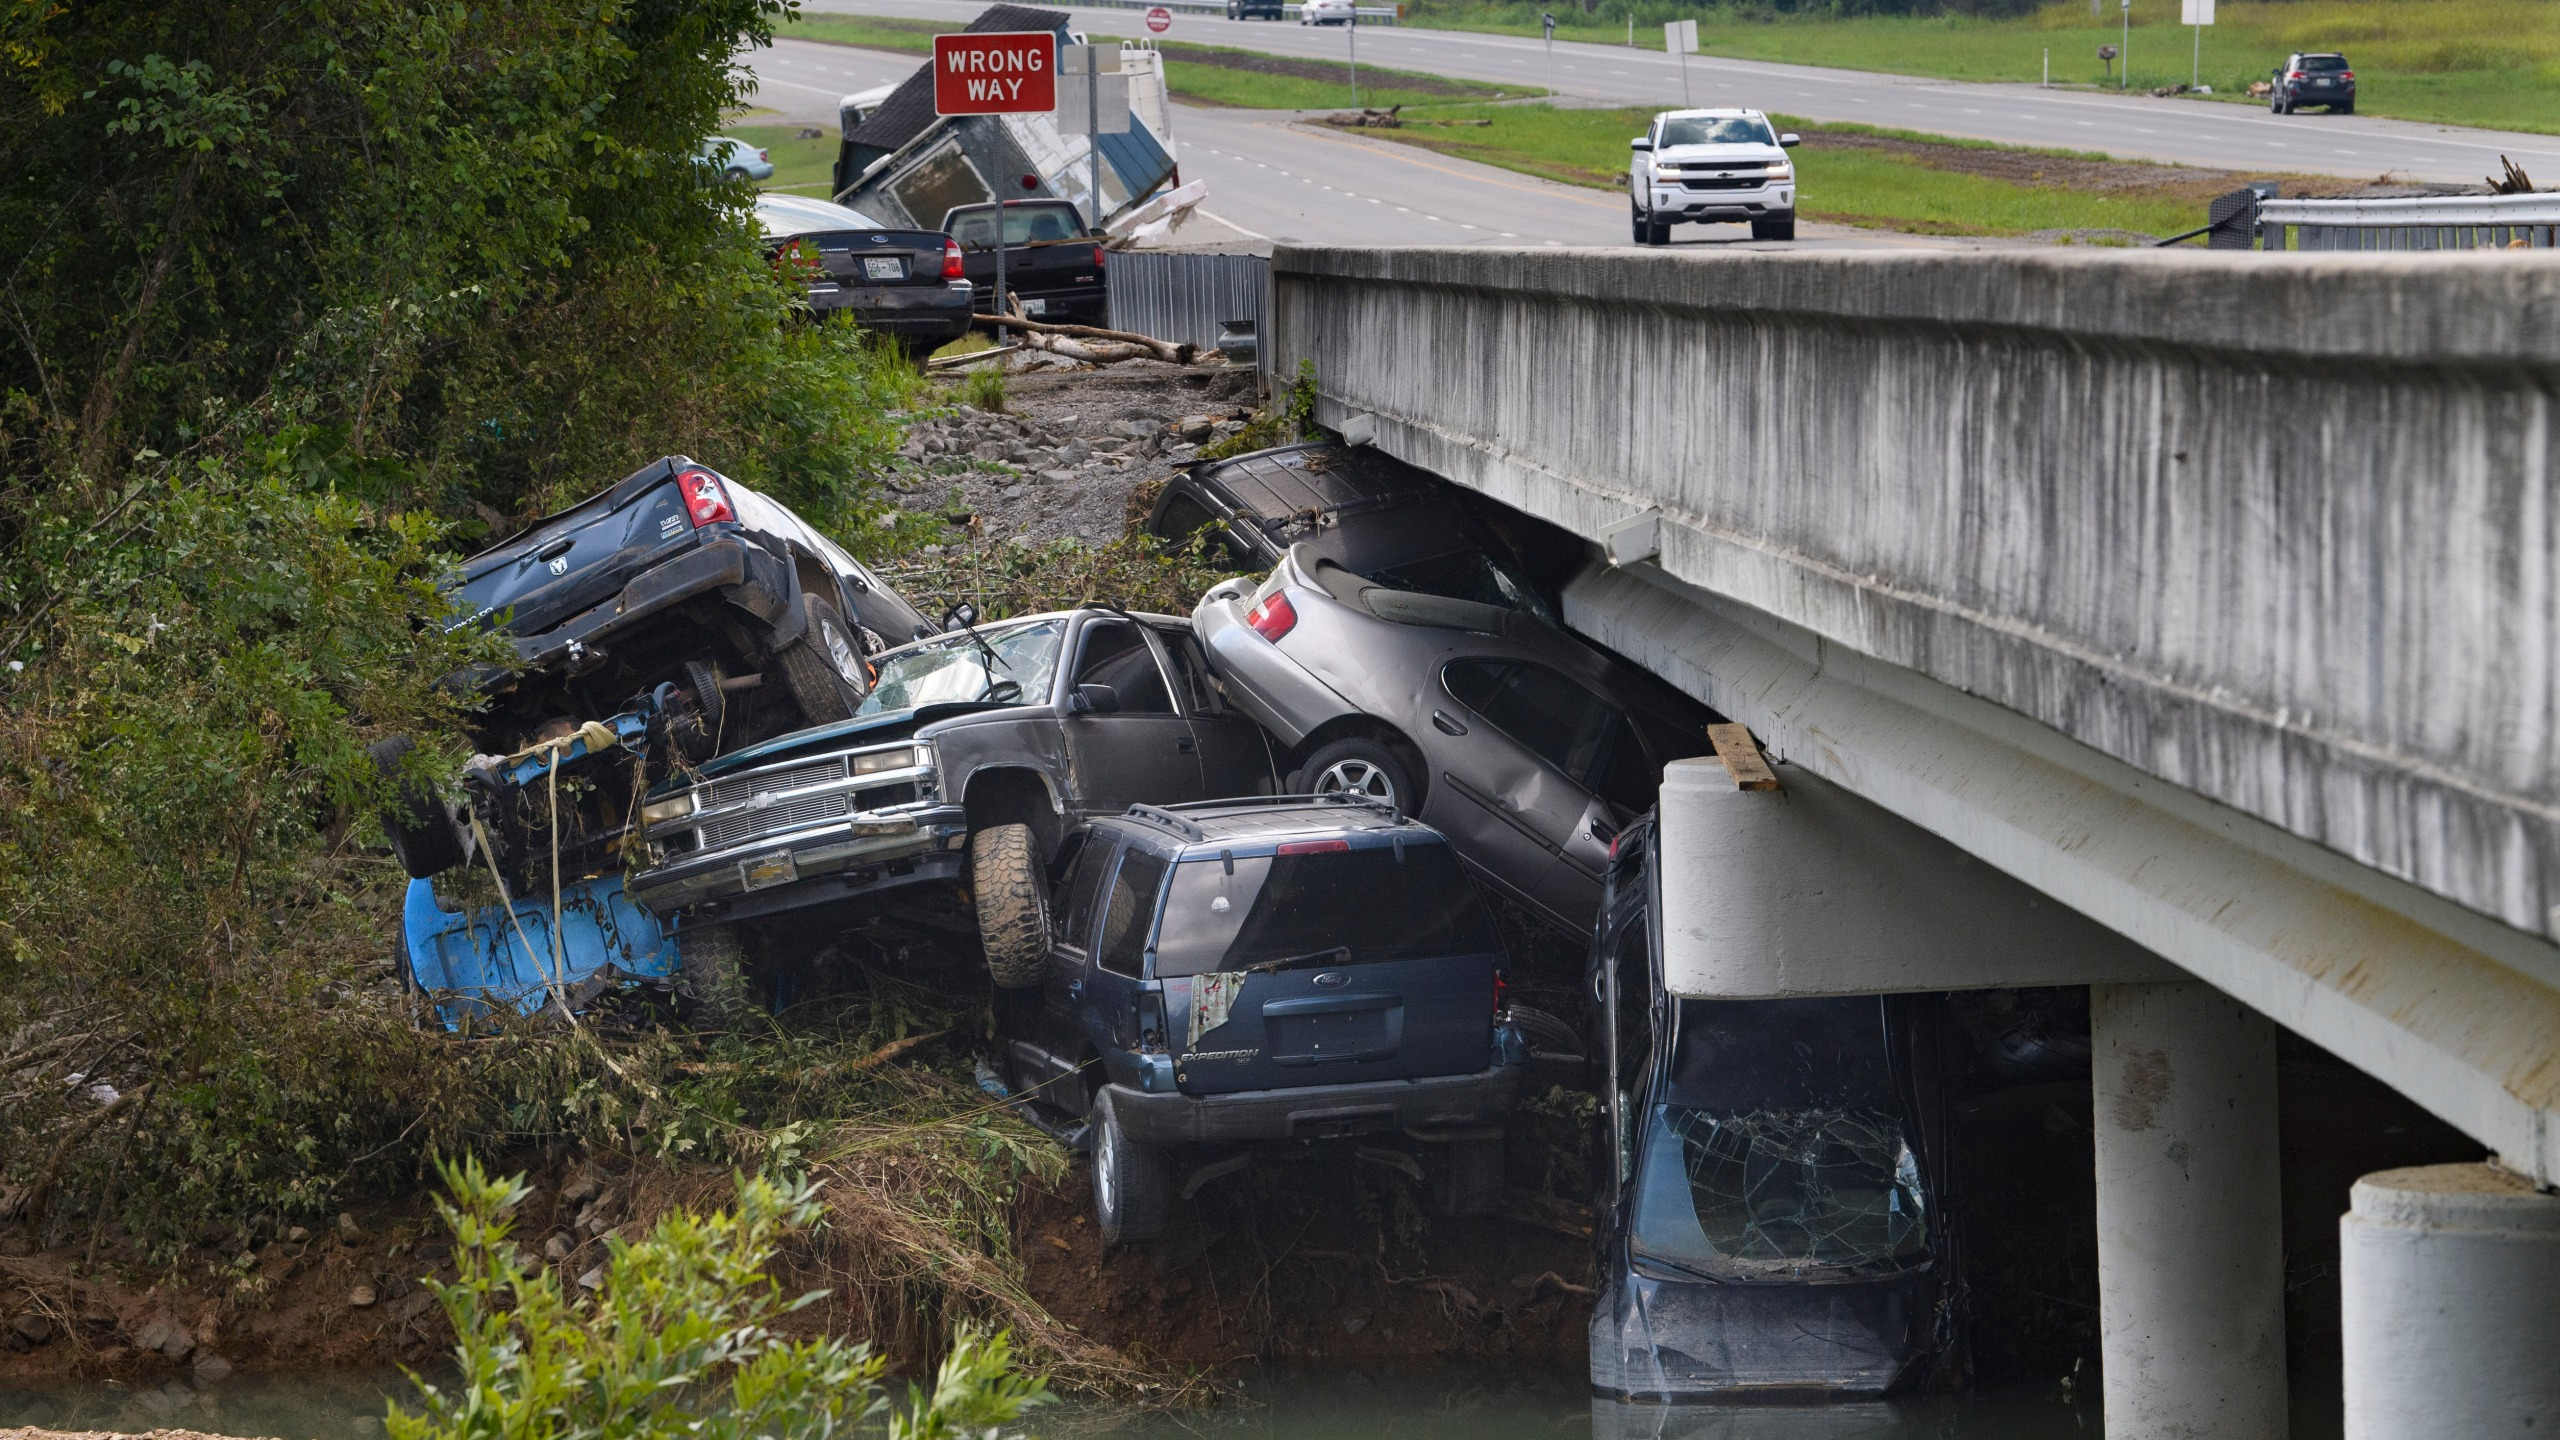 Cars are stacked on top of each other on the banks of Blue Creek being swept up in flood water on Aug. 23, 2021, in Waverly, Tenn. (John Amis/Associated Press)